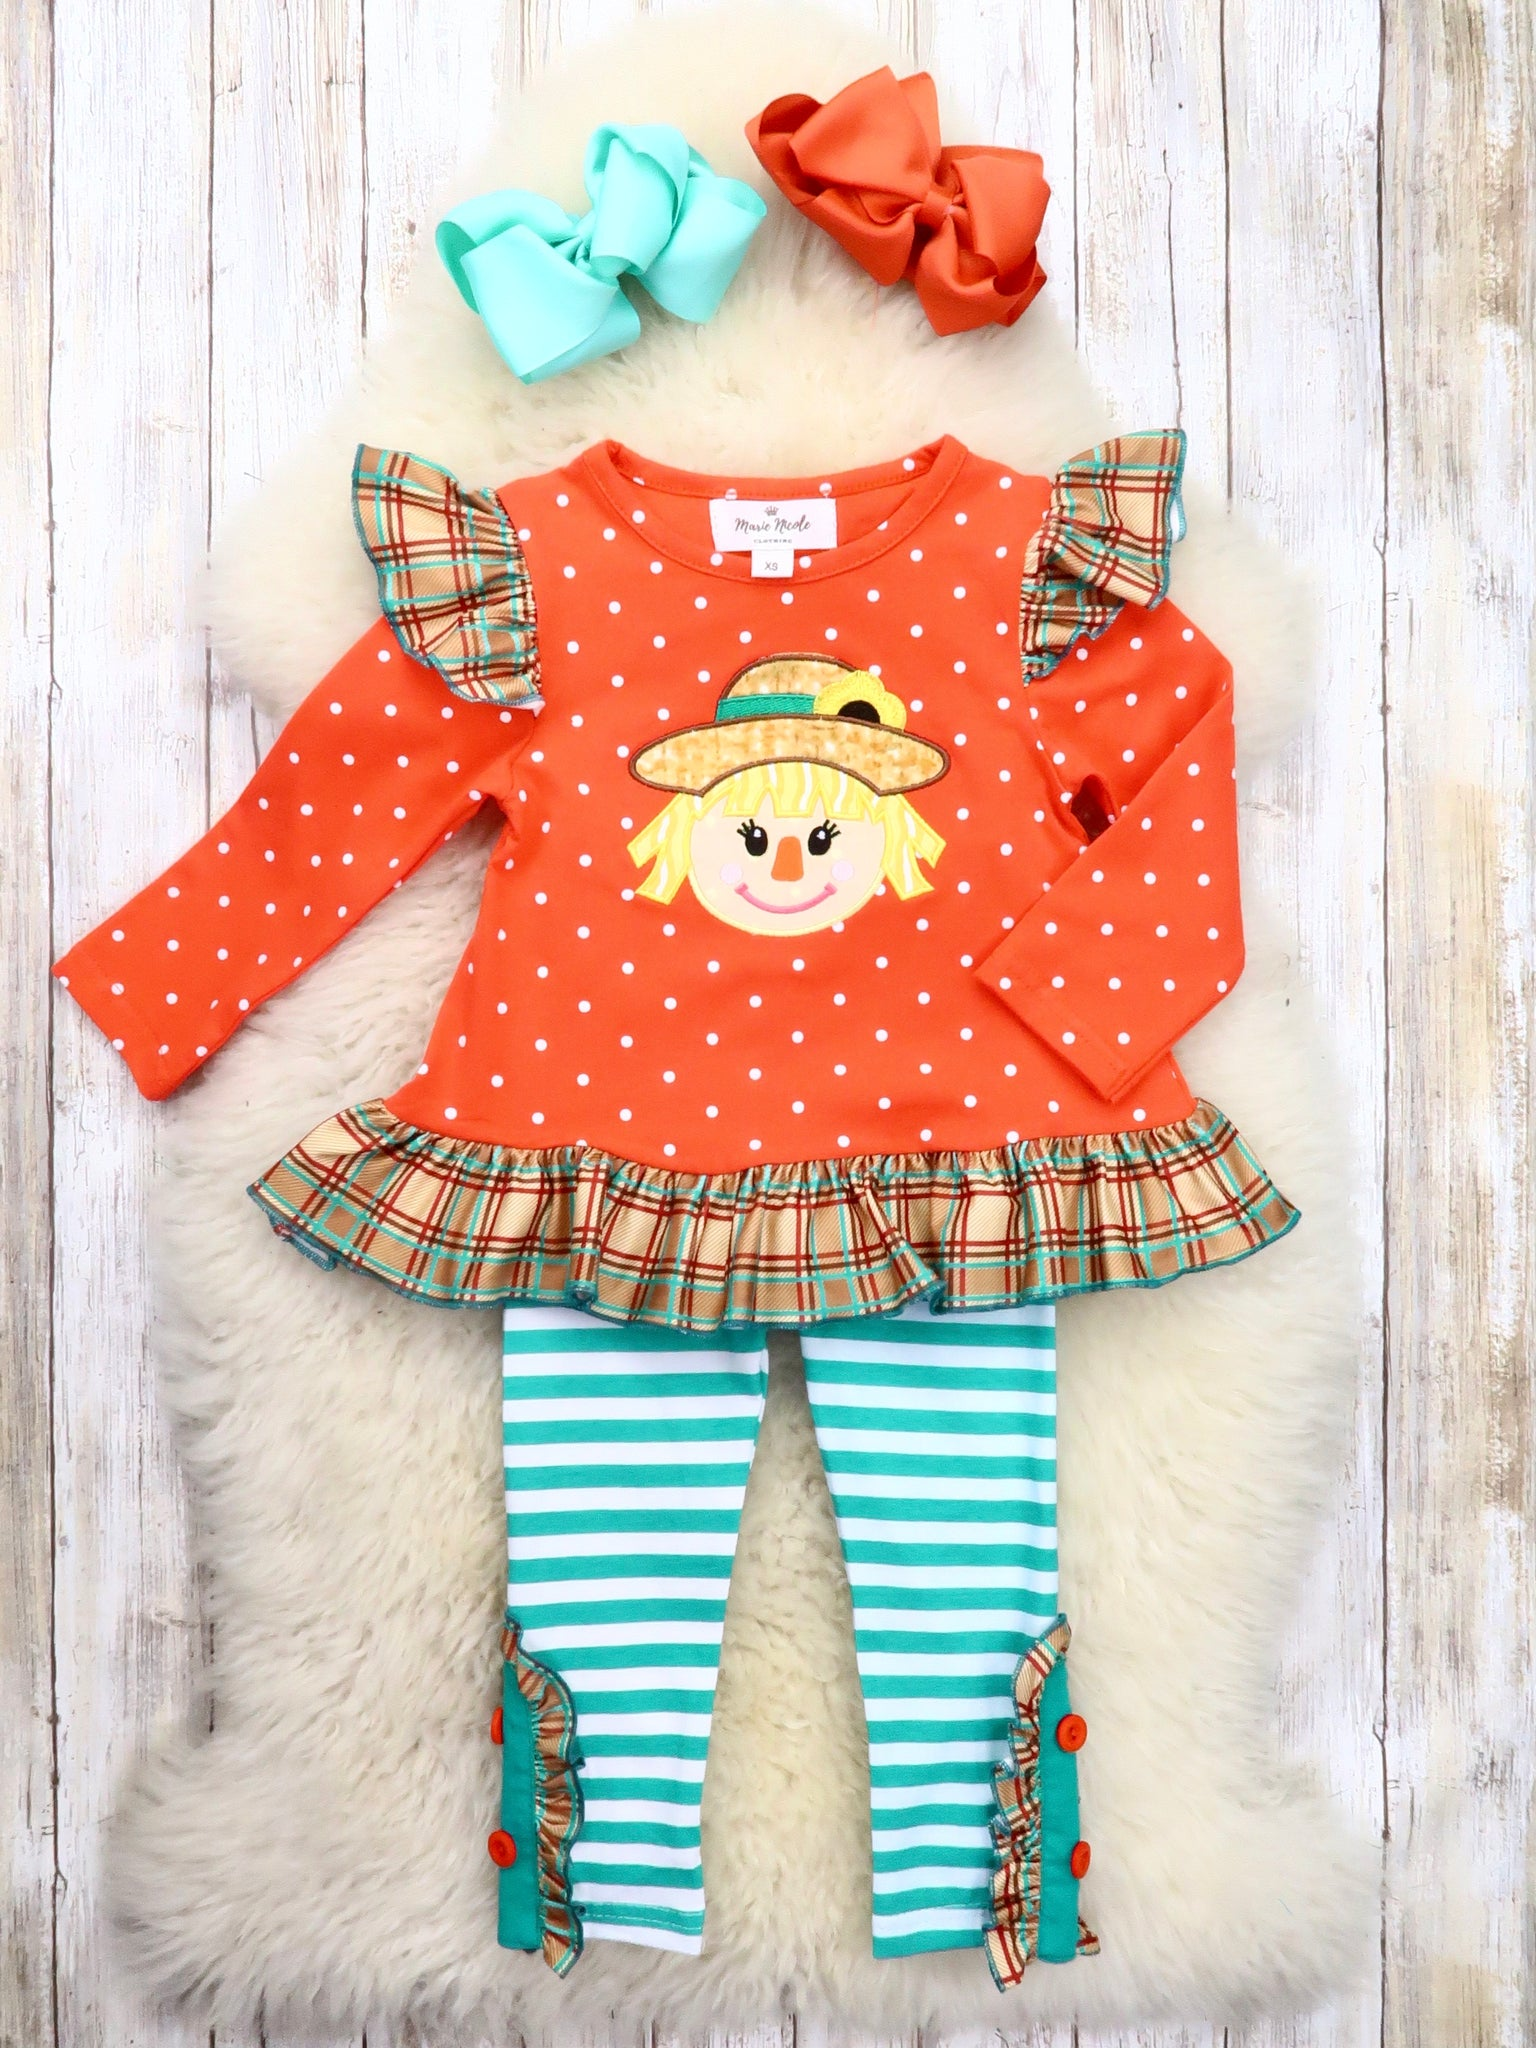 Orange Scarecrow Ruffle Top & Teal Striped Pants Outfit